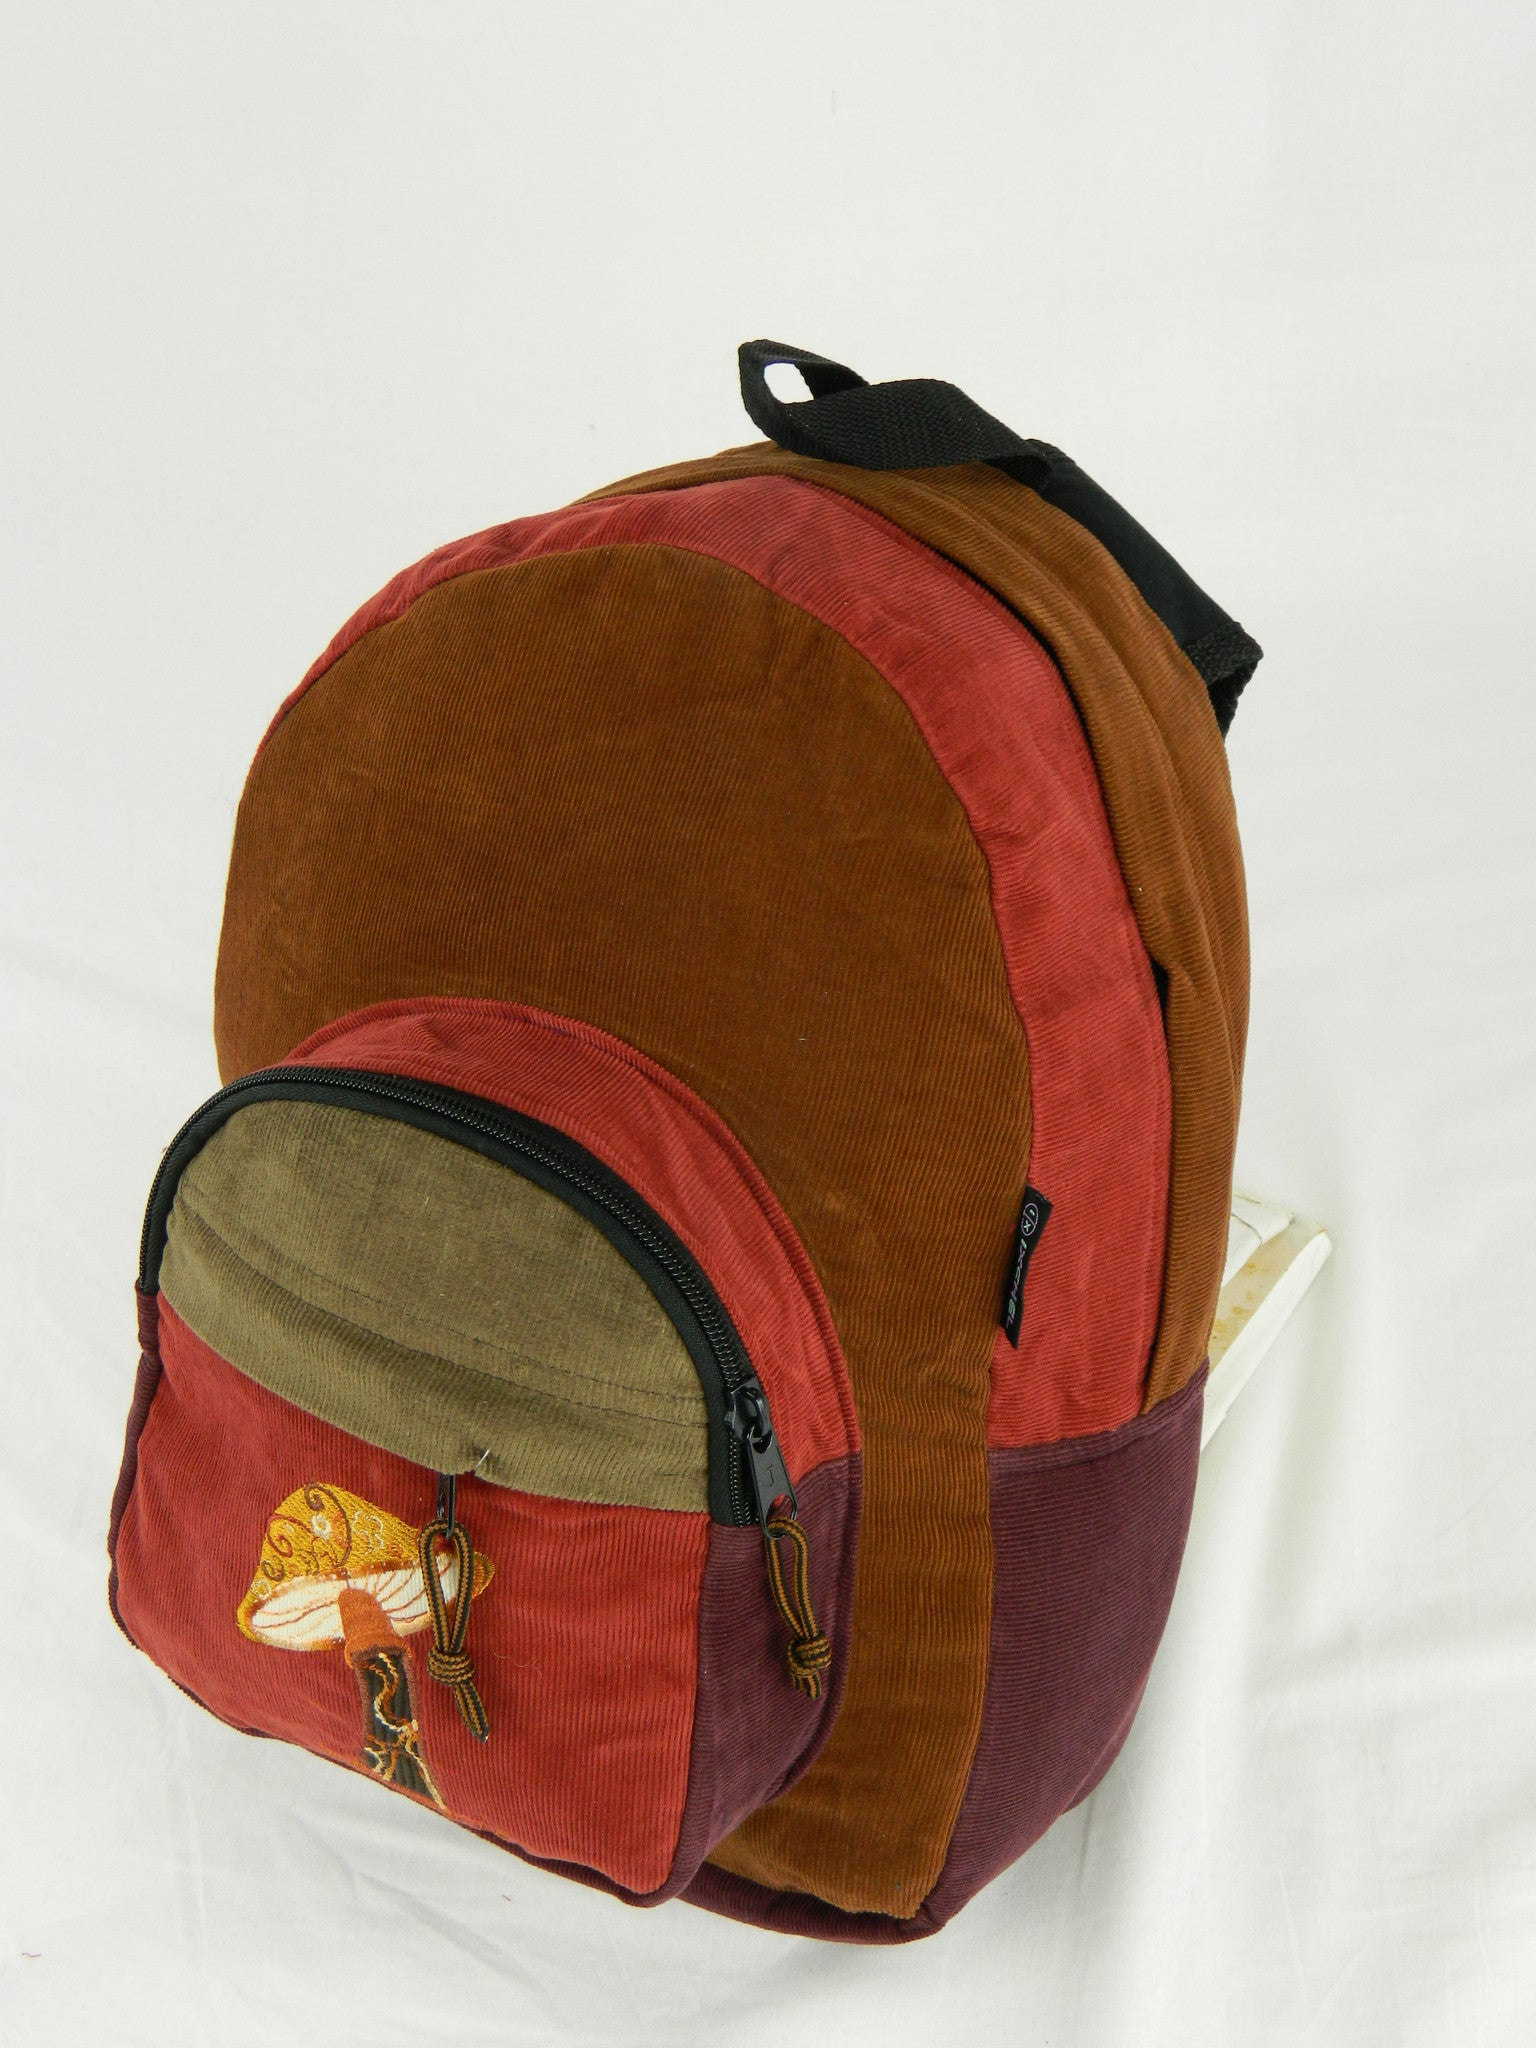 Corduroy patch backpack mushroom embroidery medum café